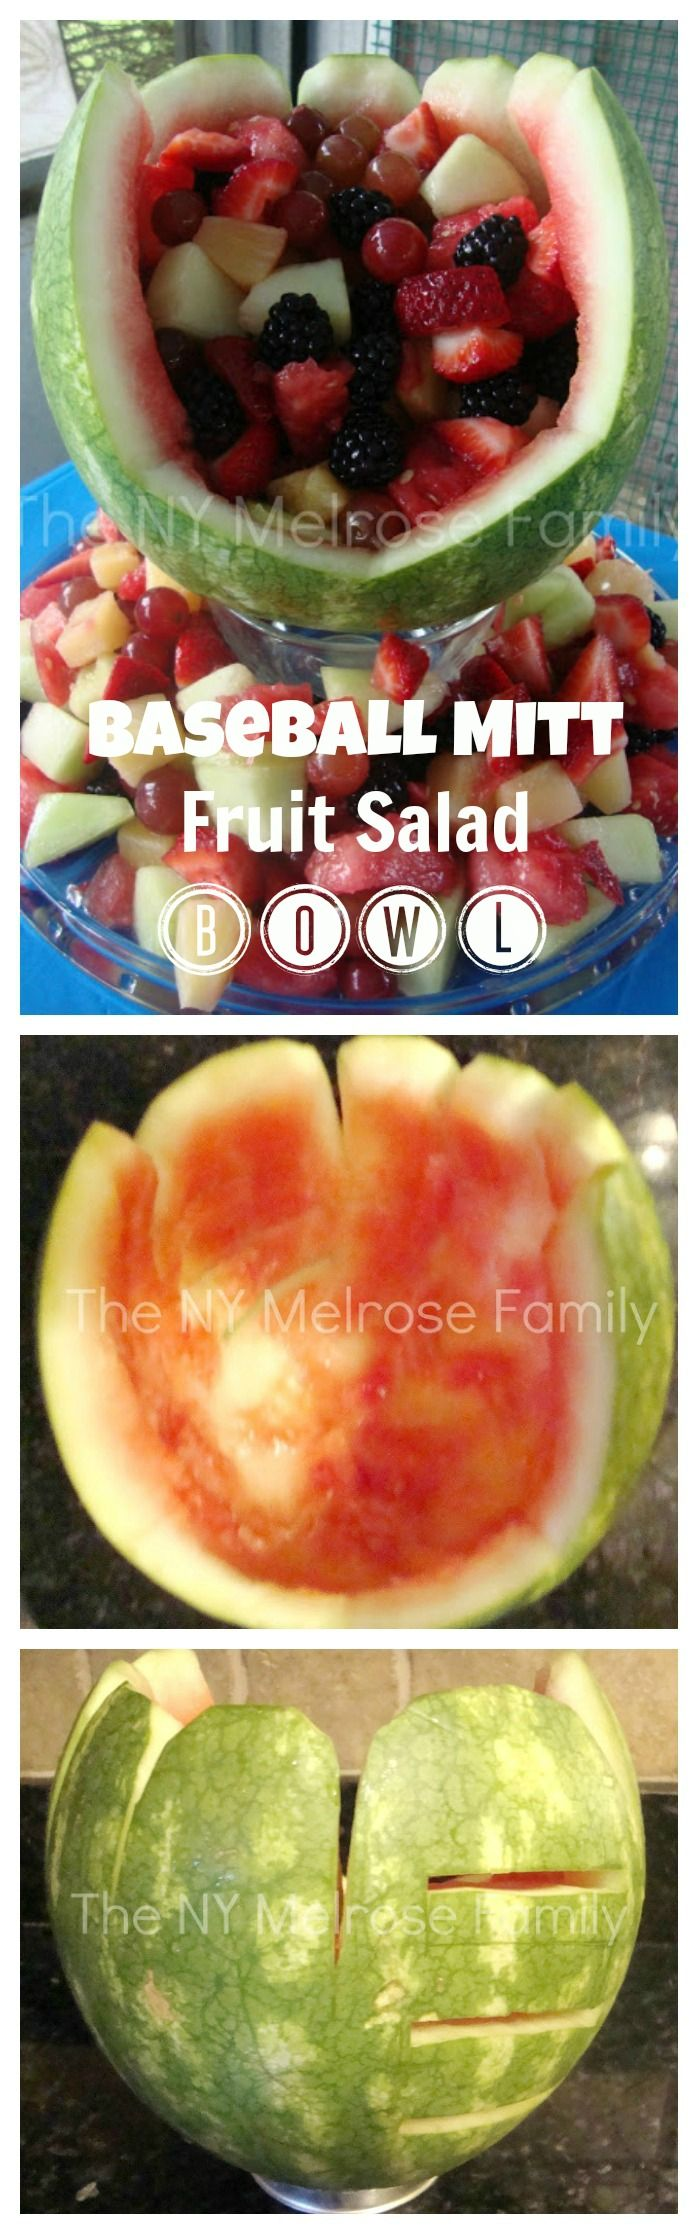 Baseball Mitt Fruit Salad Bowl #fruitsalad